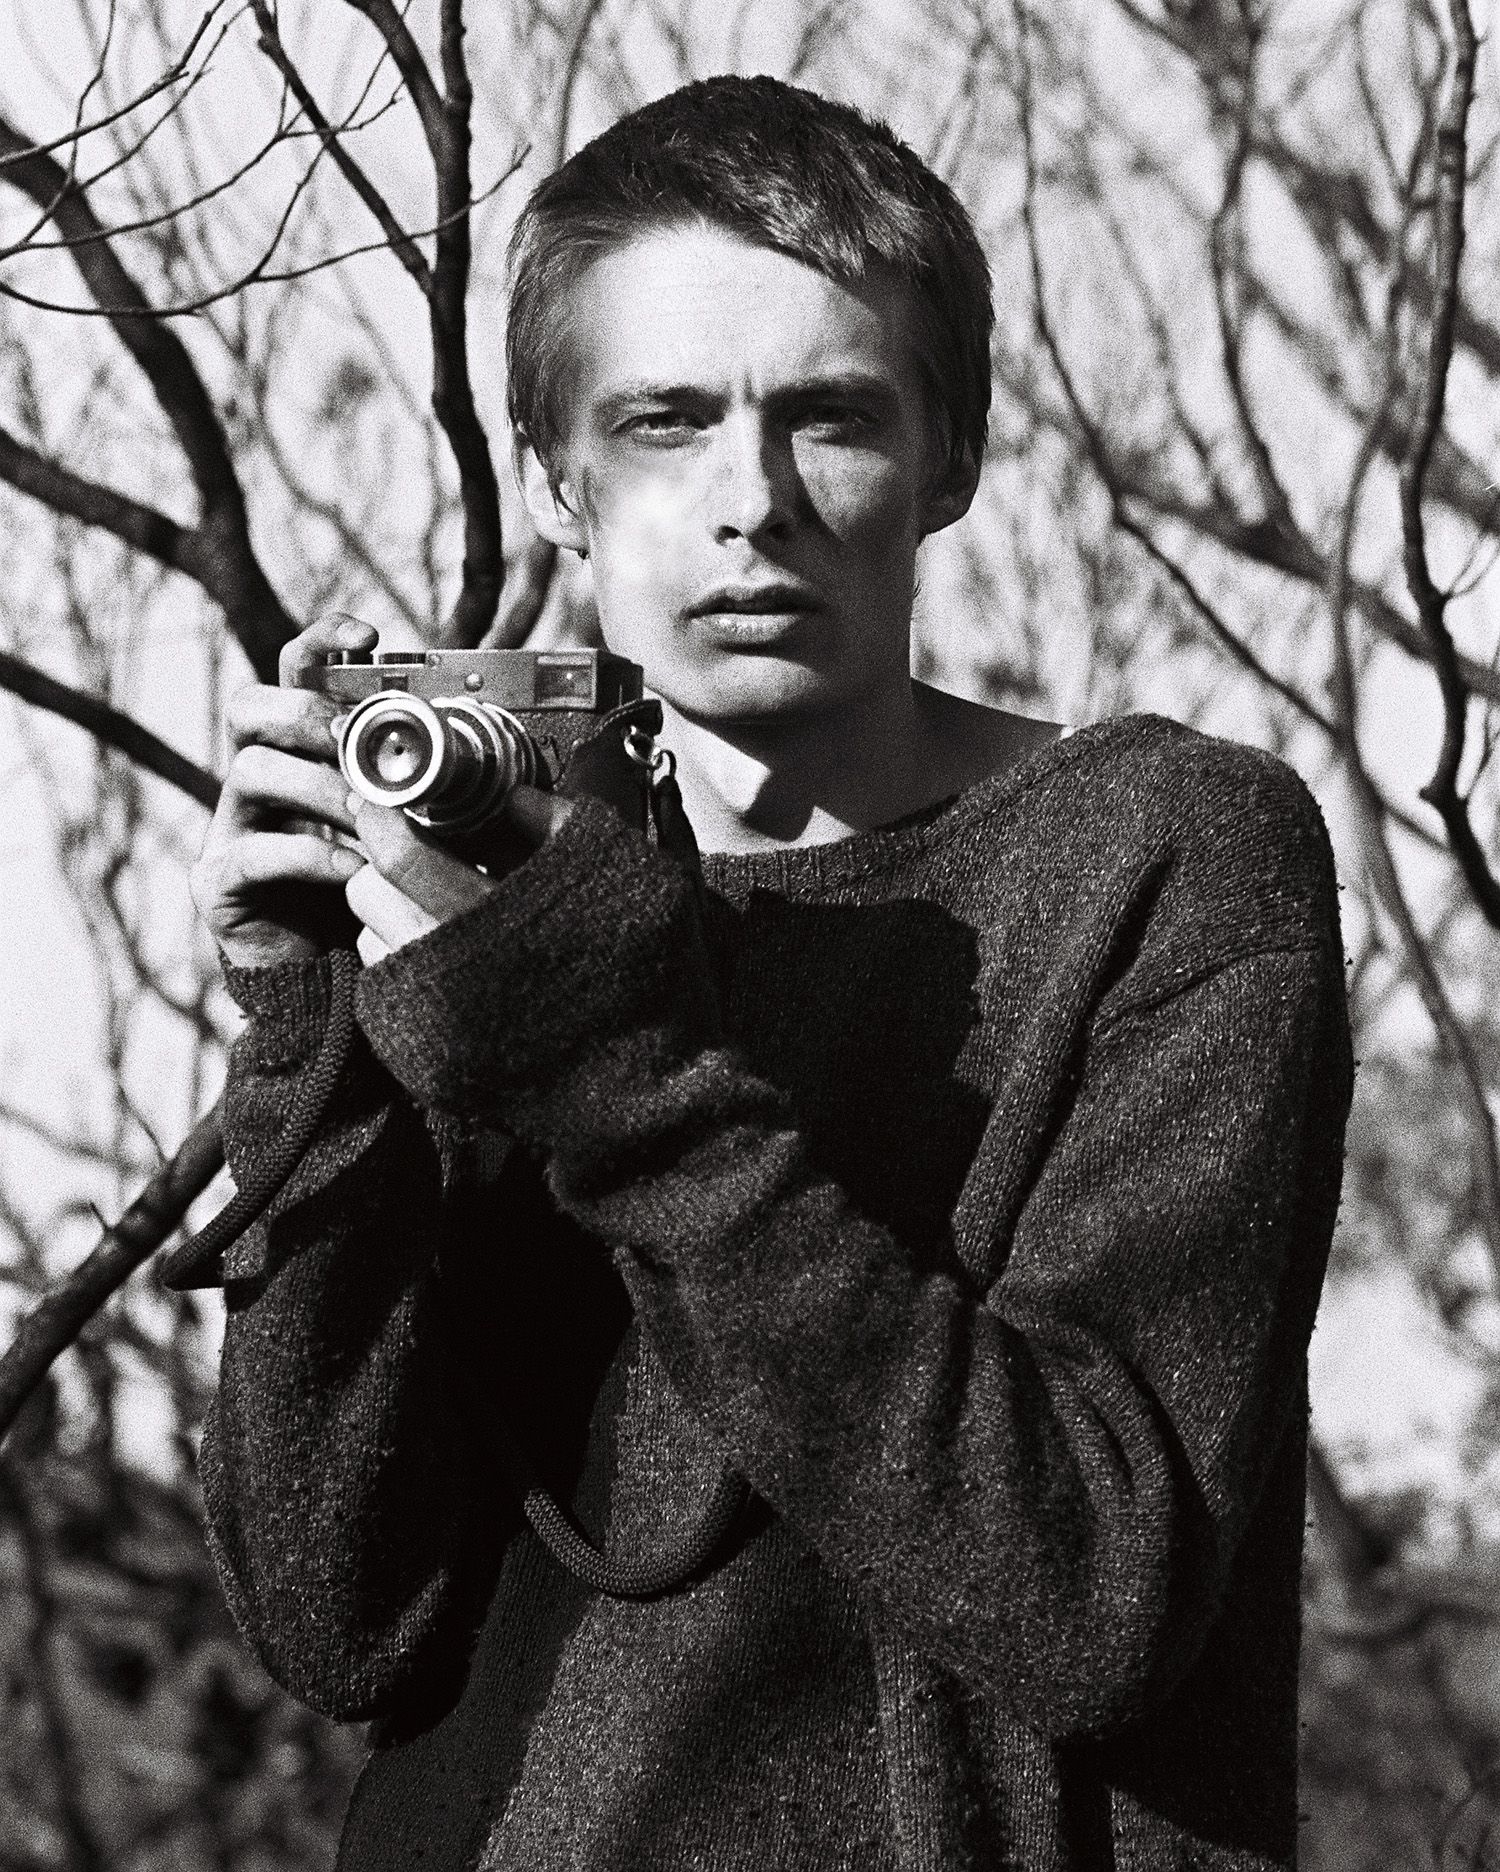 Me and my Leica M-D, shot by  Matt Robson  on TRI-X 400. Ironically, Matt used a Nikon F100 for this shot.